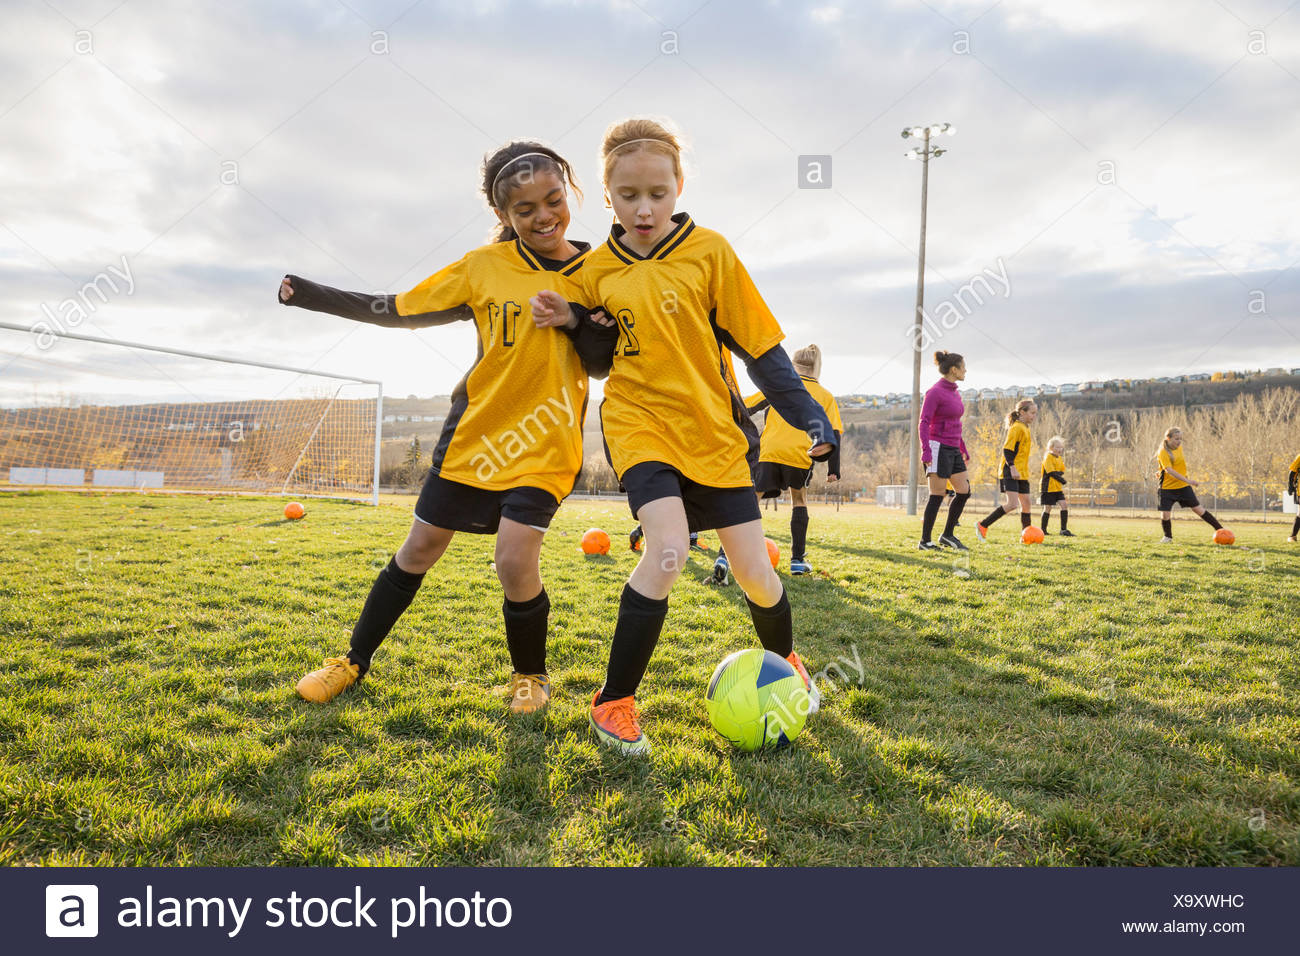 Girls practicing soccer drills on field - Stock Image